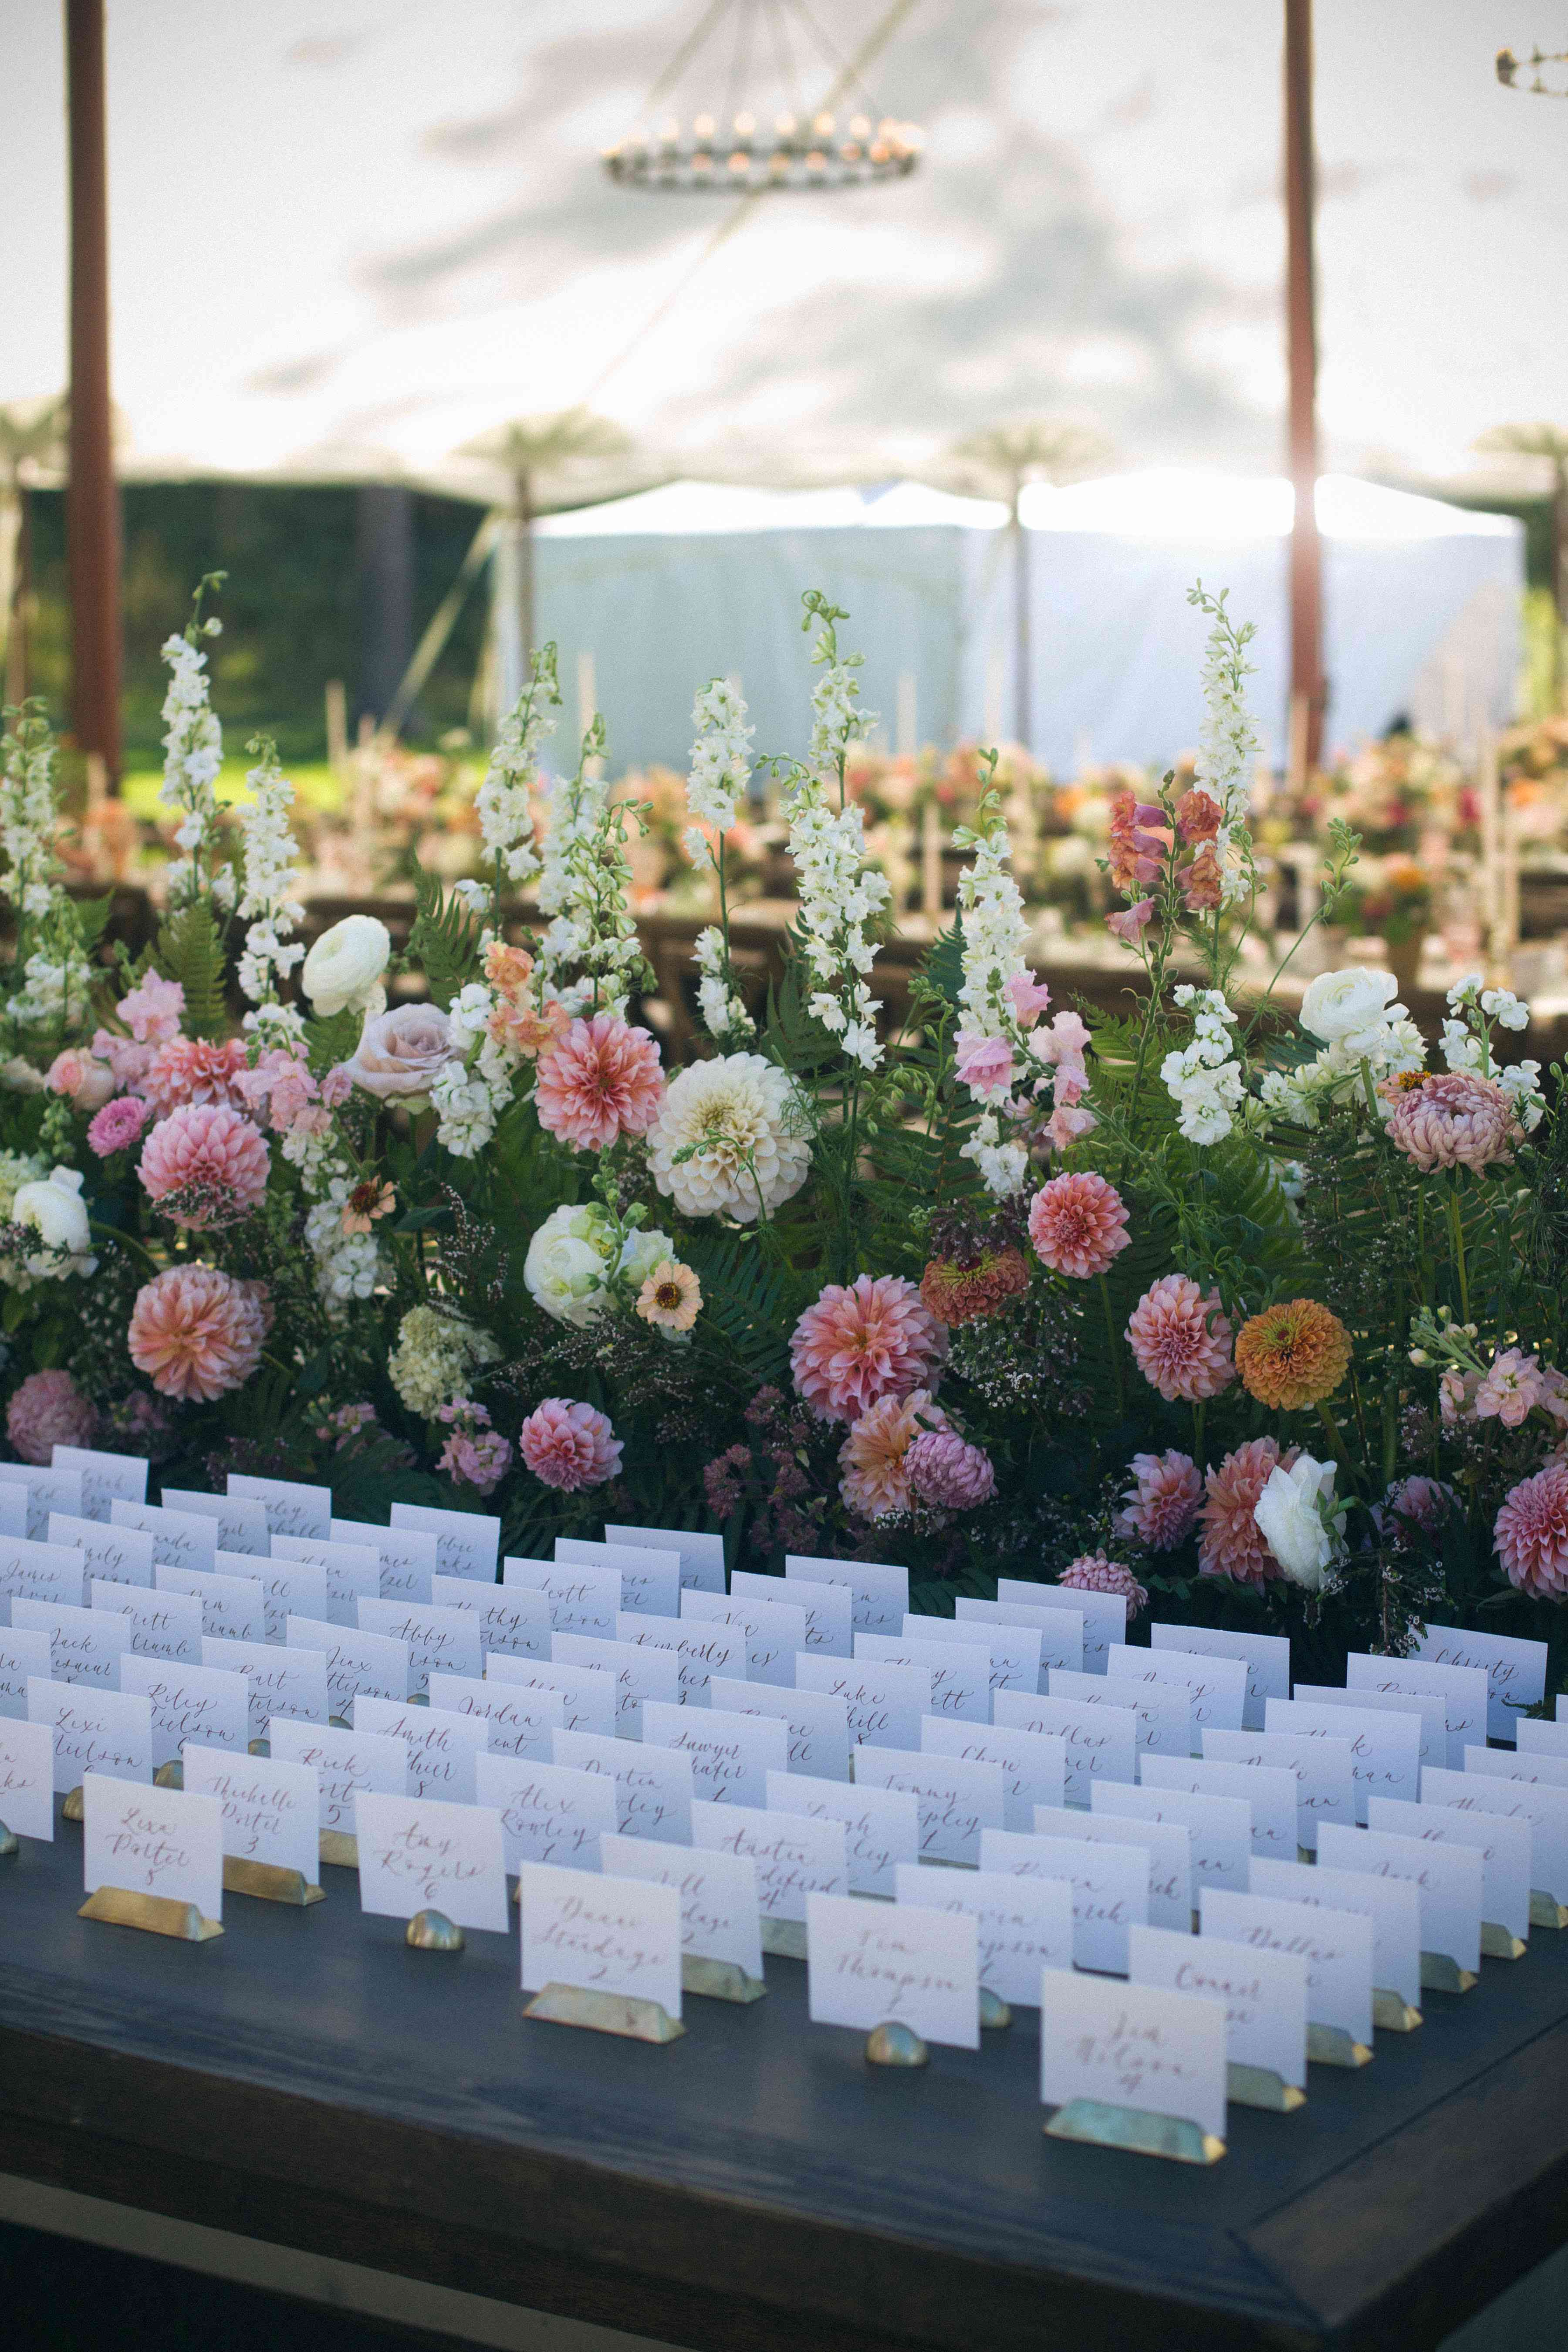 Escort cards displayed with multicolored flowers